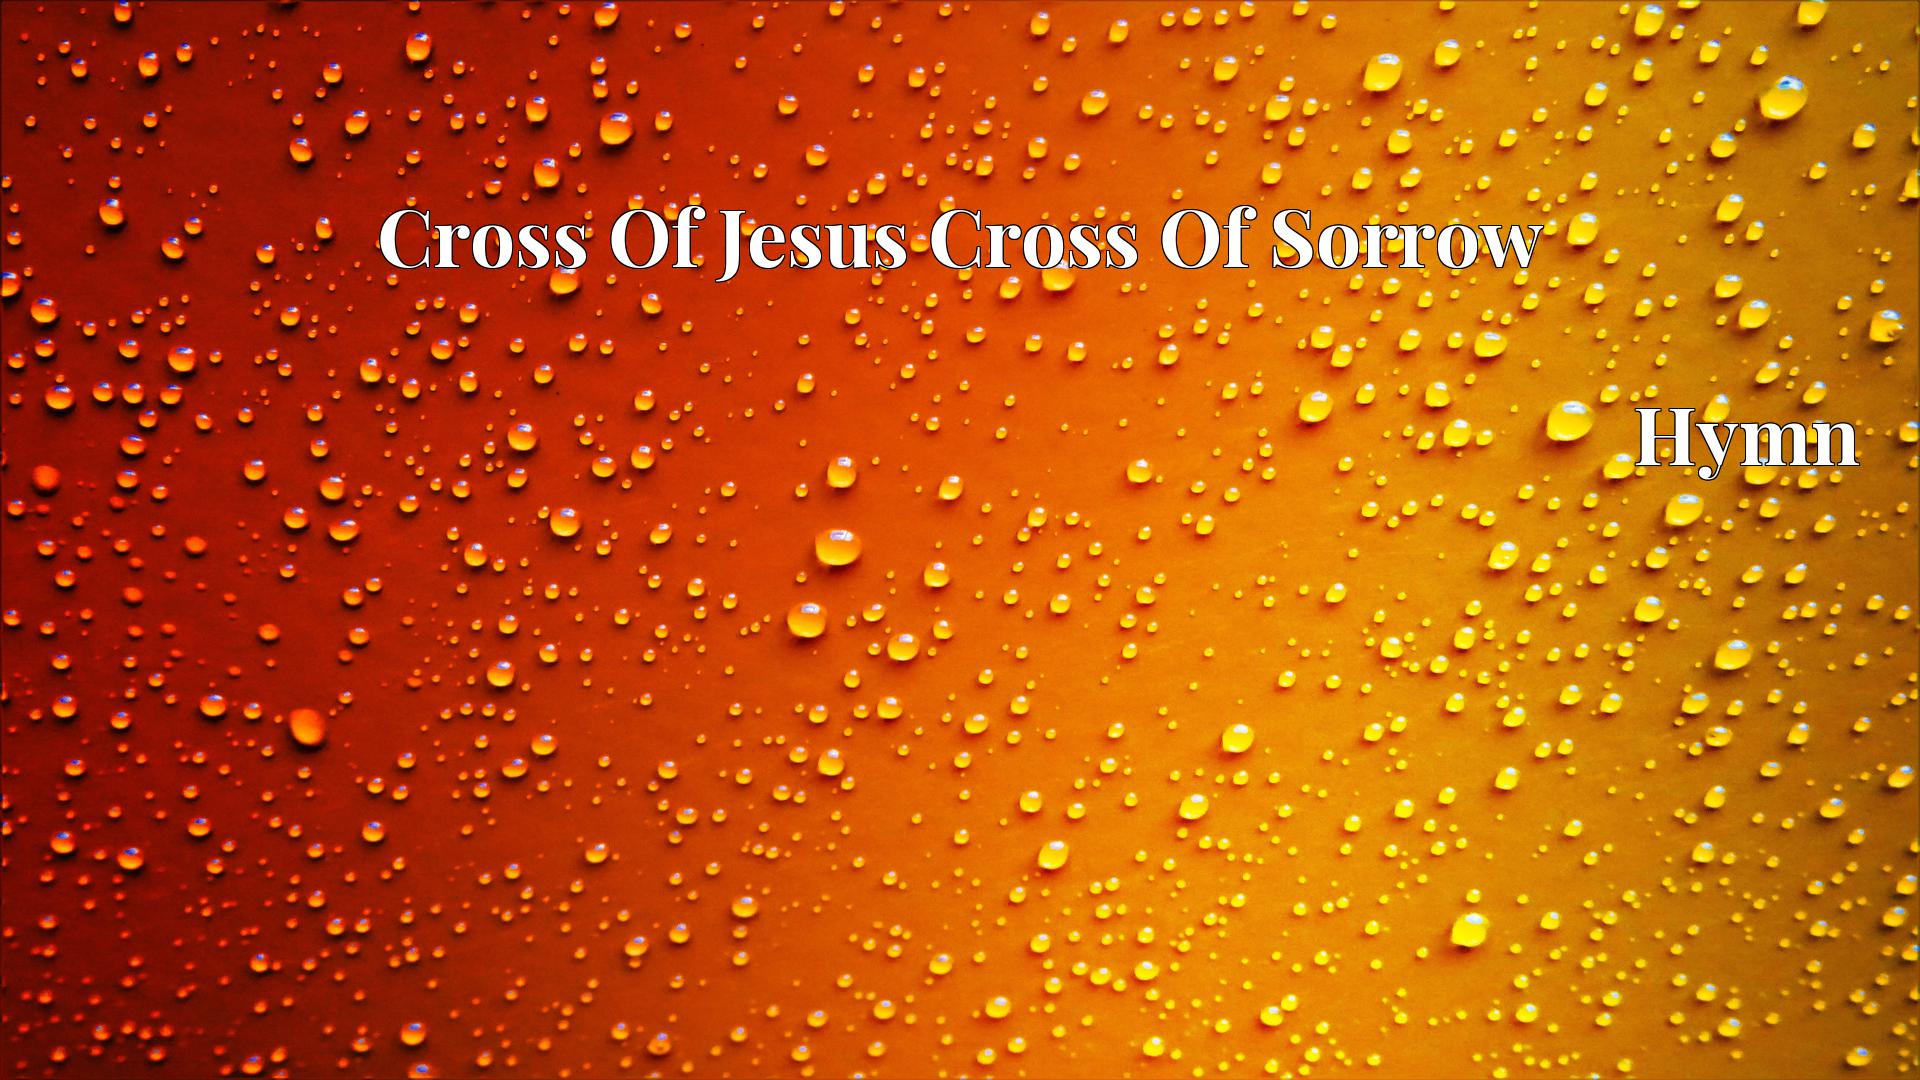 Cross Of Jesus Cross Of Sorrow - Hymn